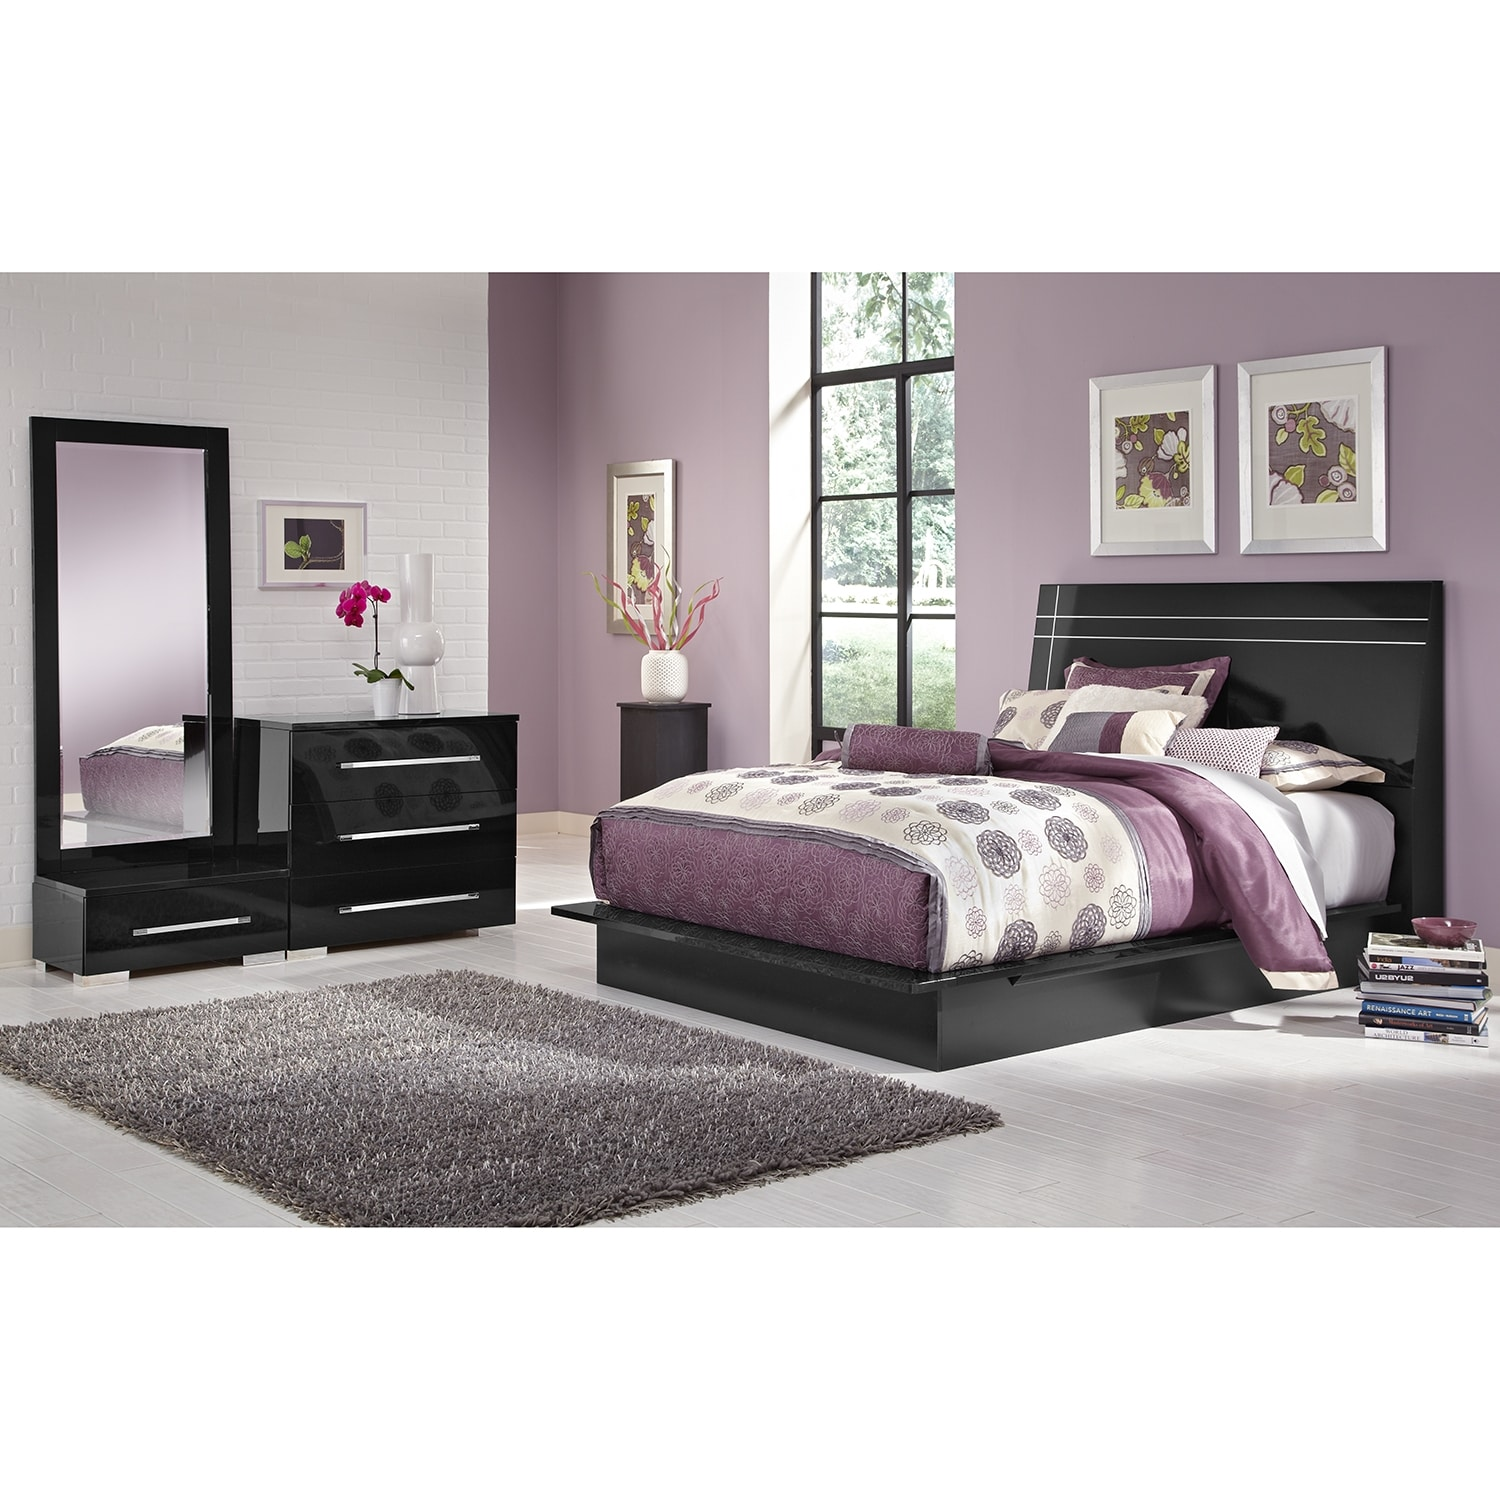 Dimora 5-Piece Queen Panel Bedroom Set - Black